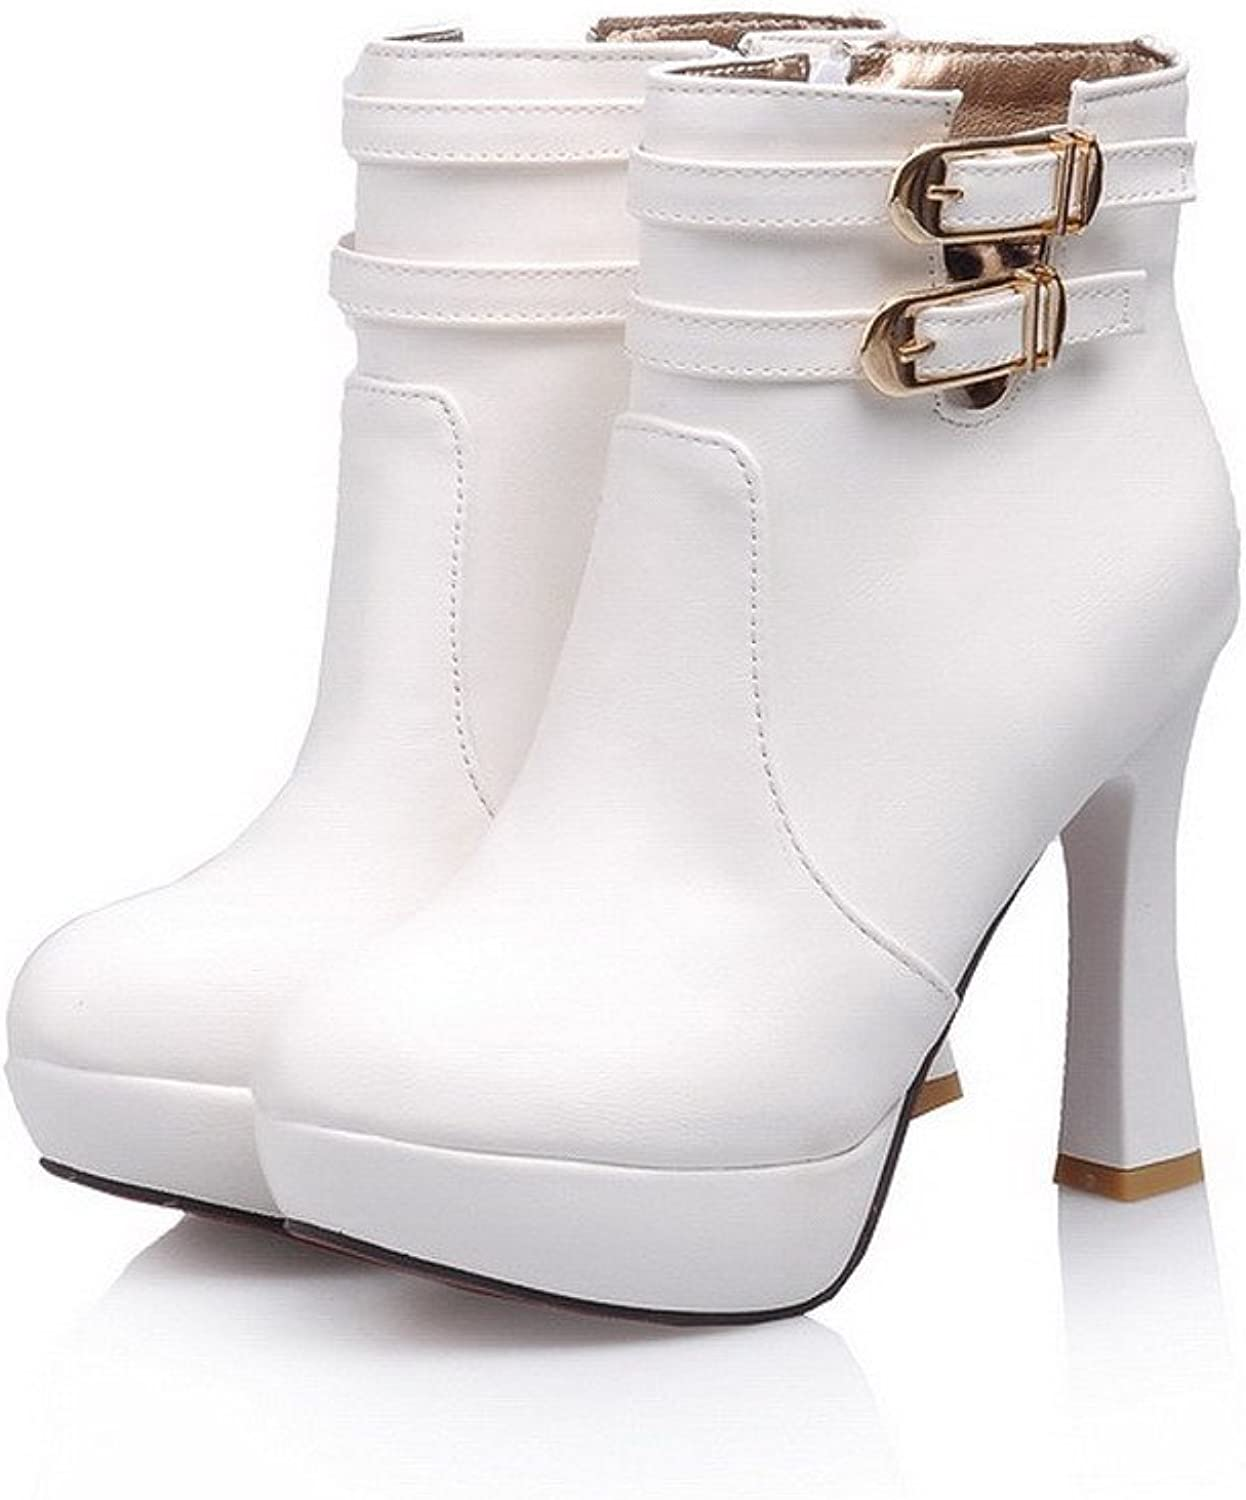 AmoonyFashion Womens High Heels PU Soft Material PU Solid Boots with Metalornament and Zipper, White, 7.5 B(M) US